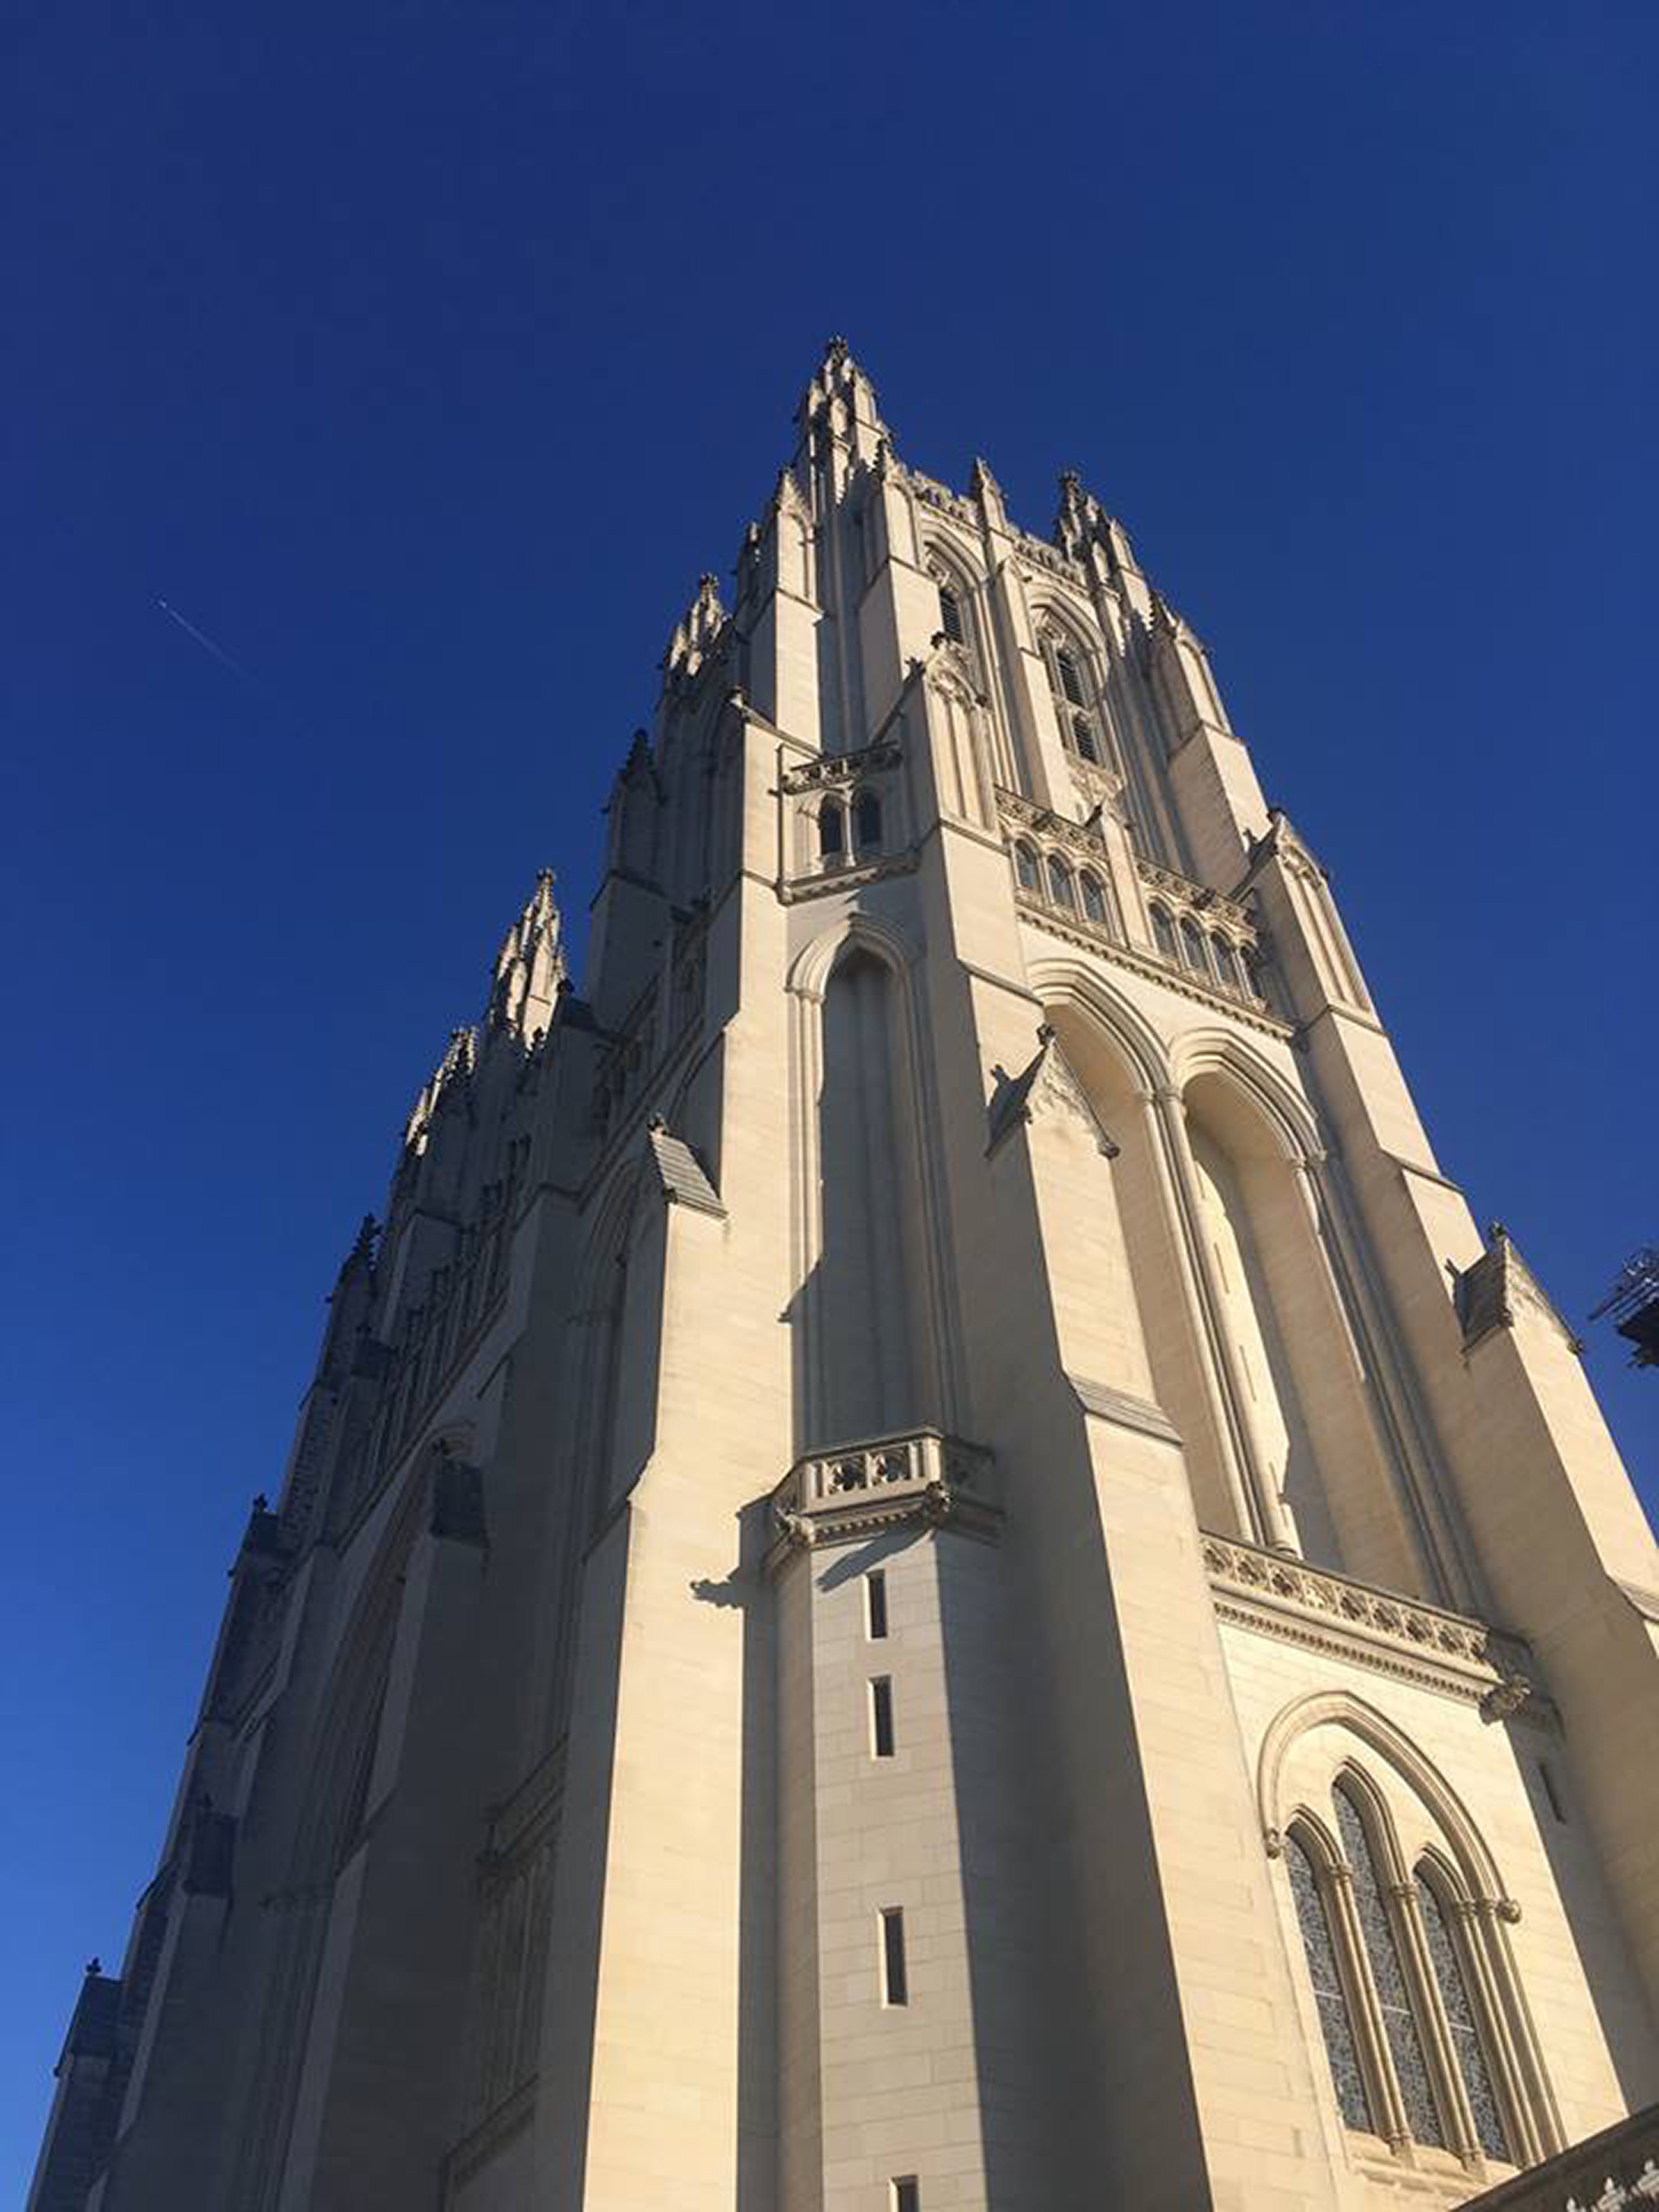 Photo of the outside of the cathedral.  The photo is take from the ground looking all the way up to the top of the very tall cathedral.